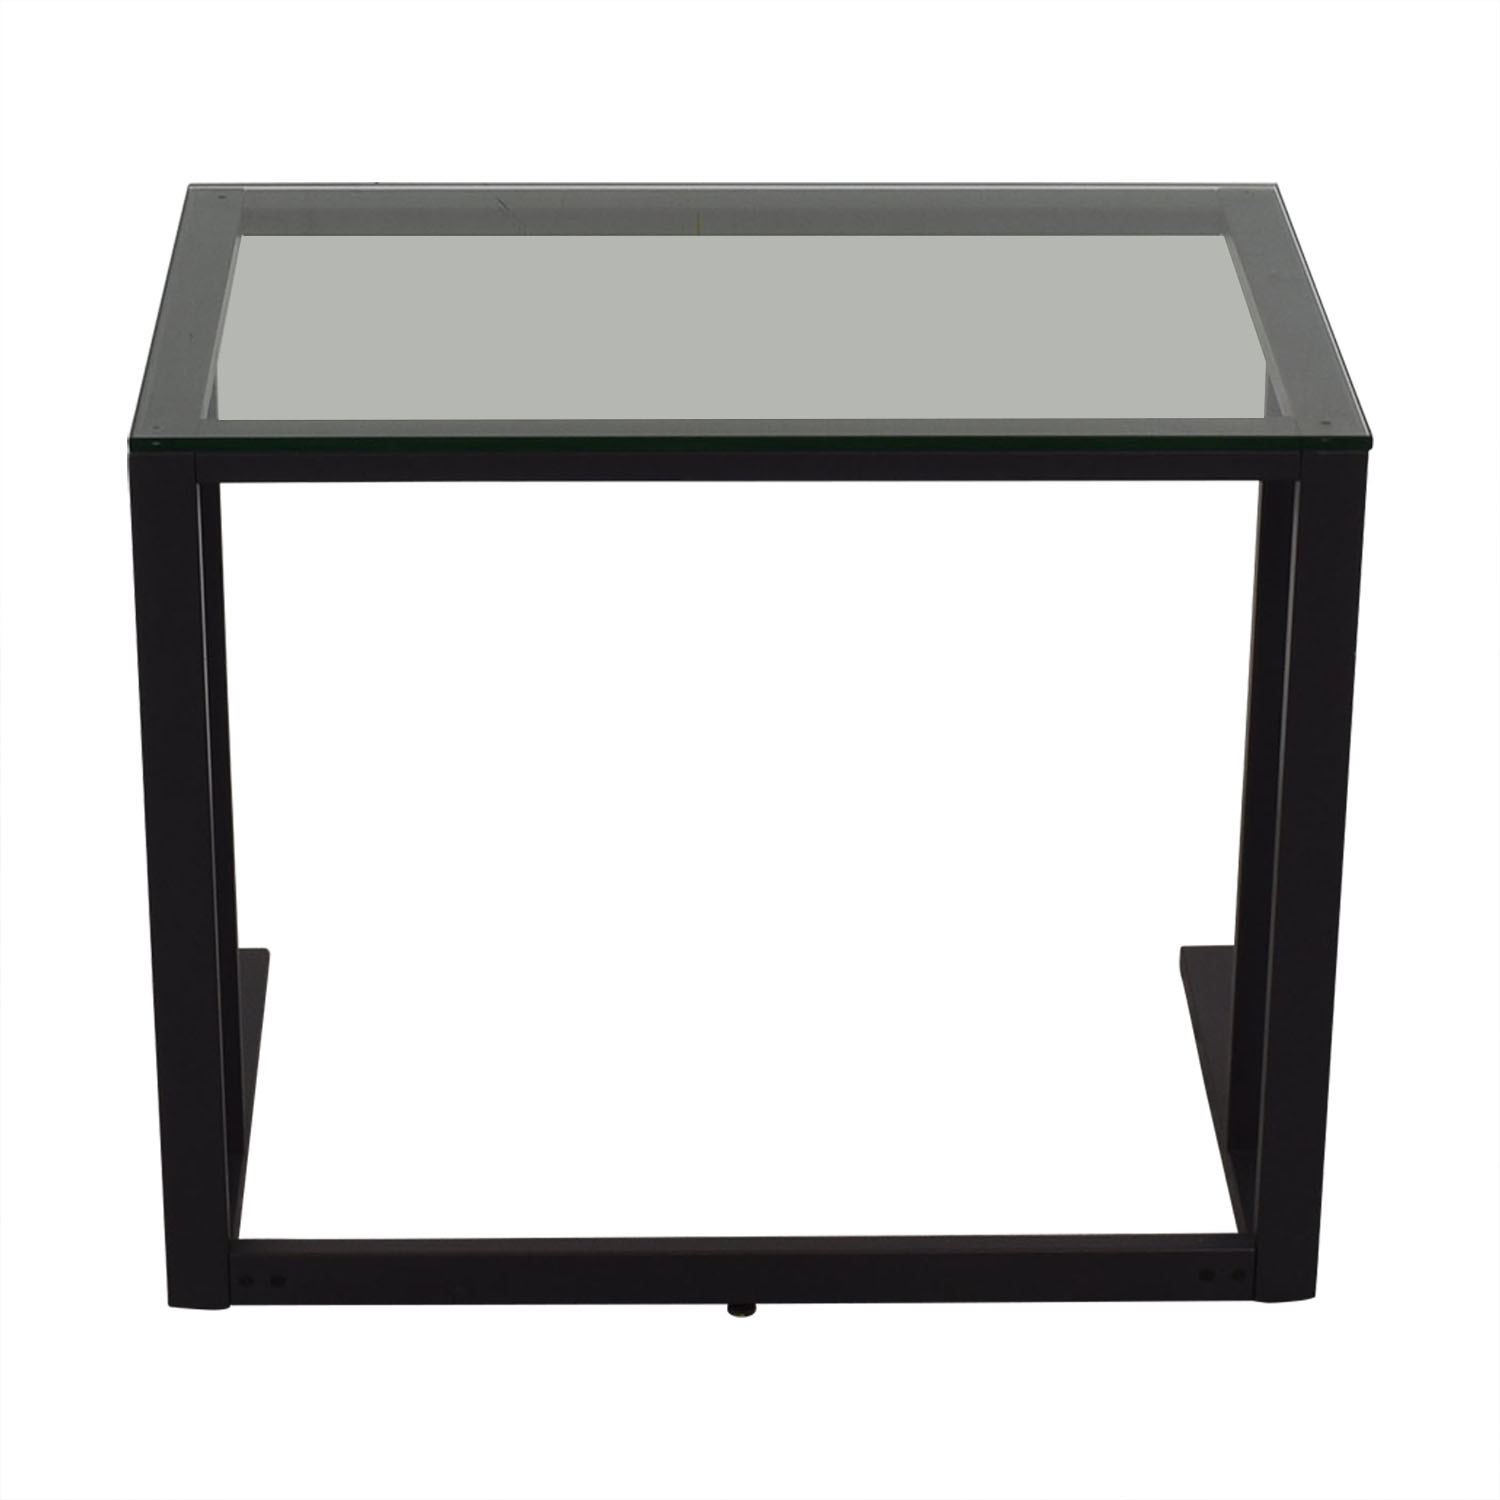 buy Crate & Barrel Glass Top Desk Crate & Barrel Home Office Desks